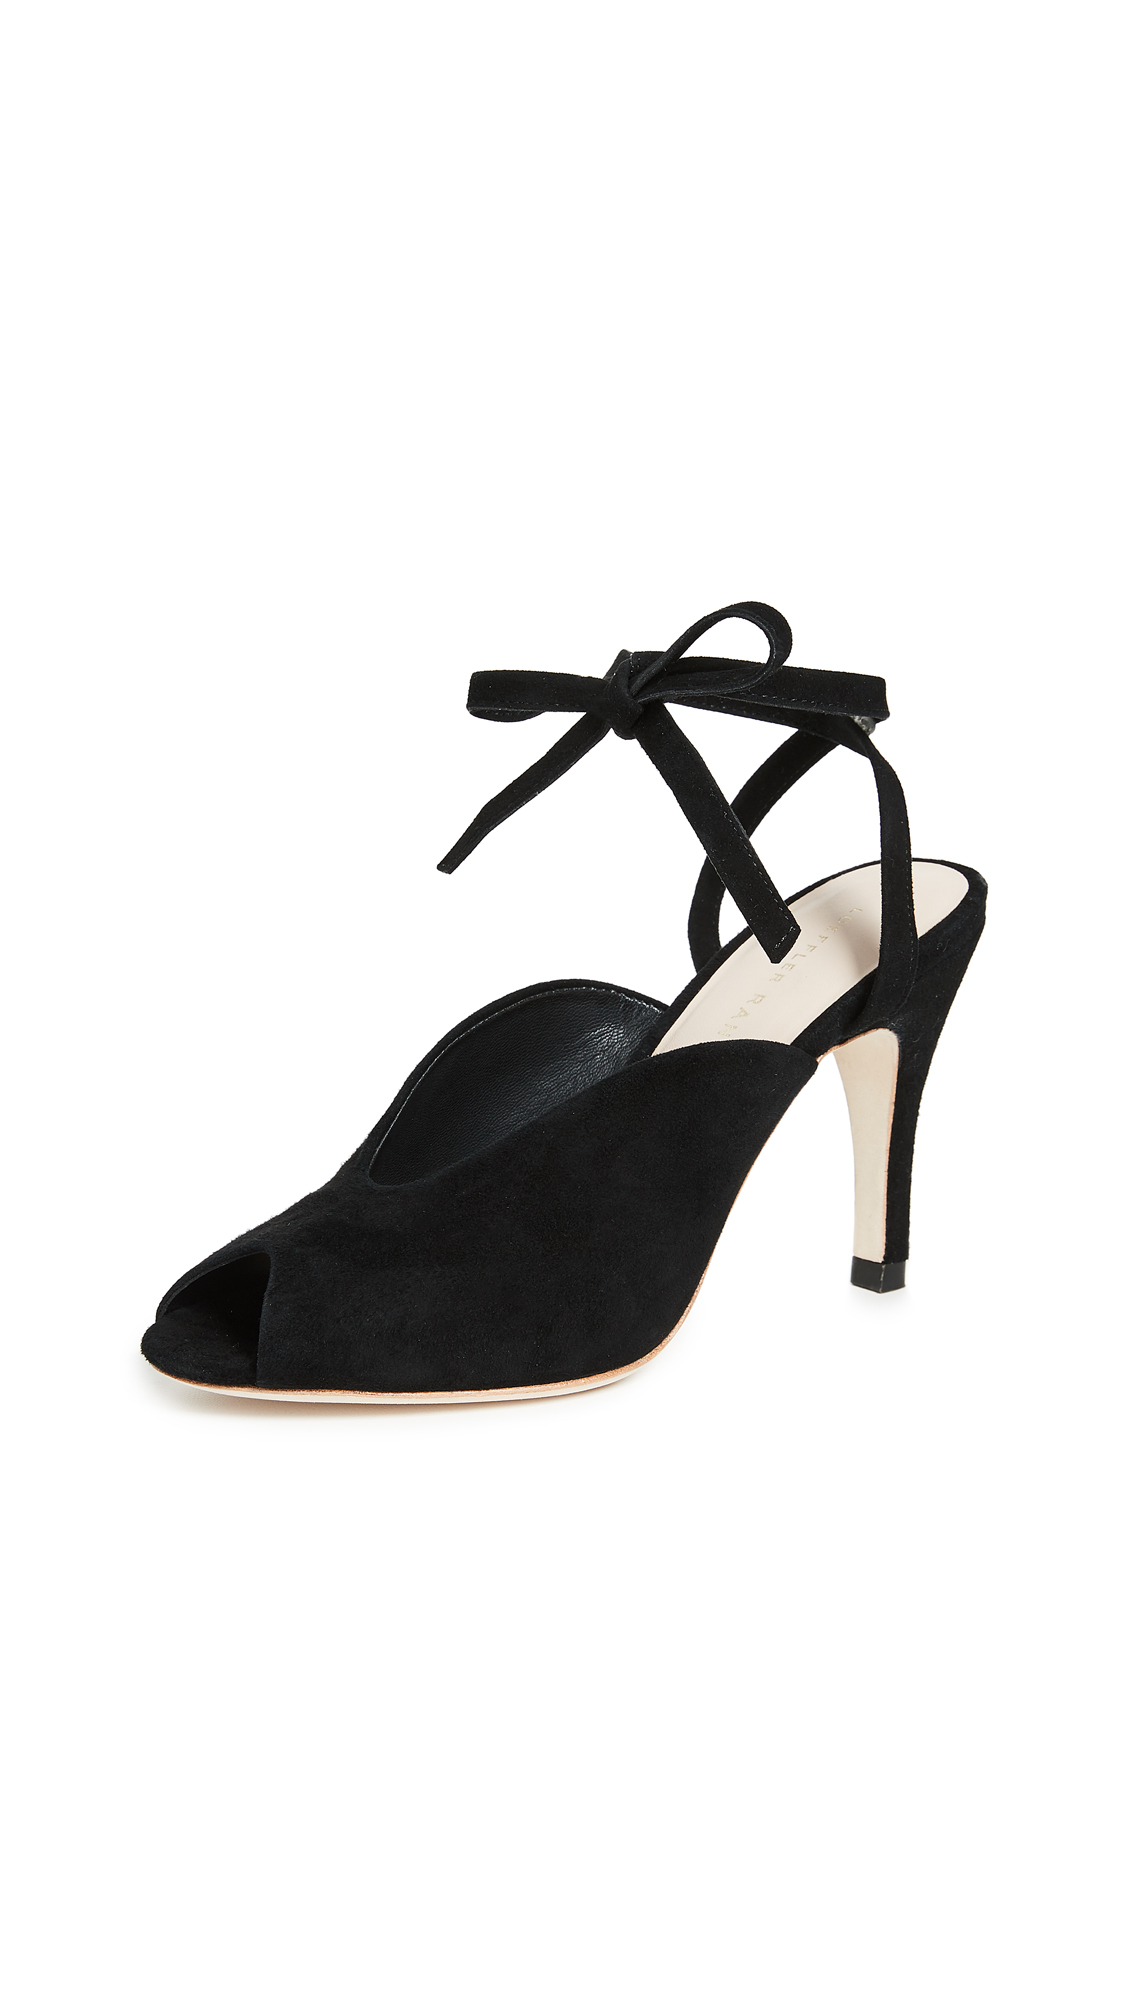 Loeffler Randall Mila Wrap Sandals - Black